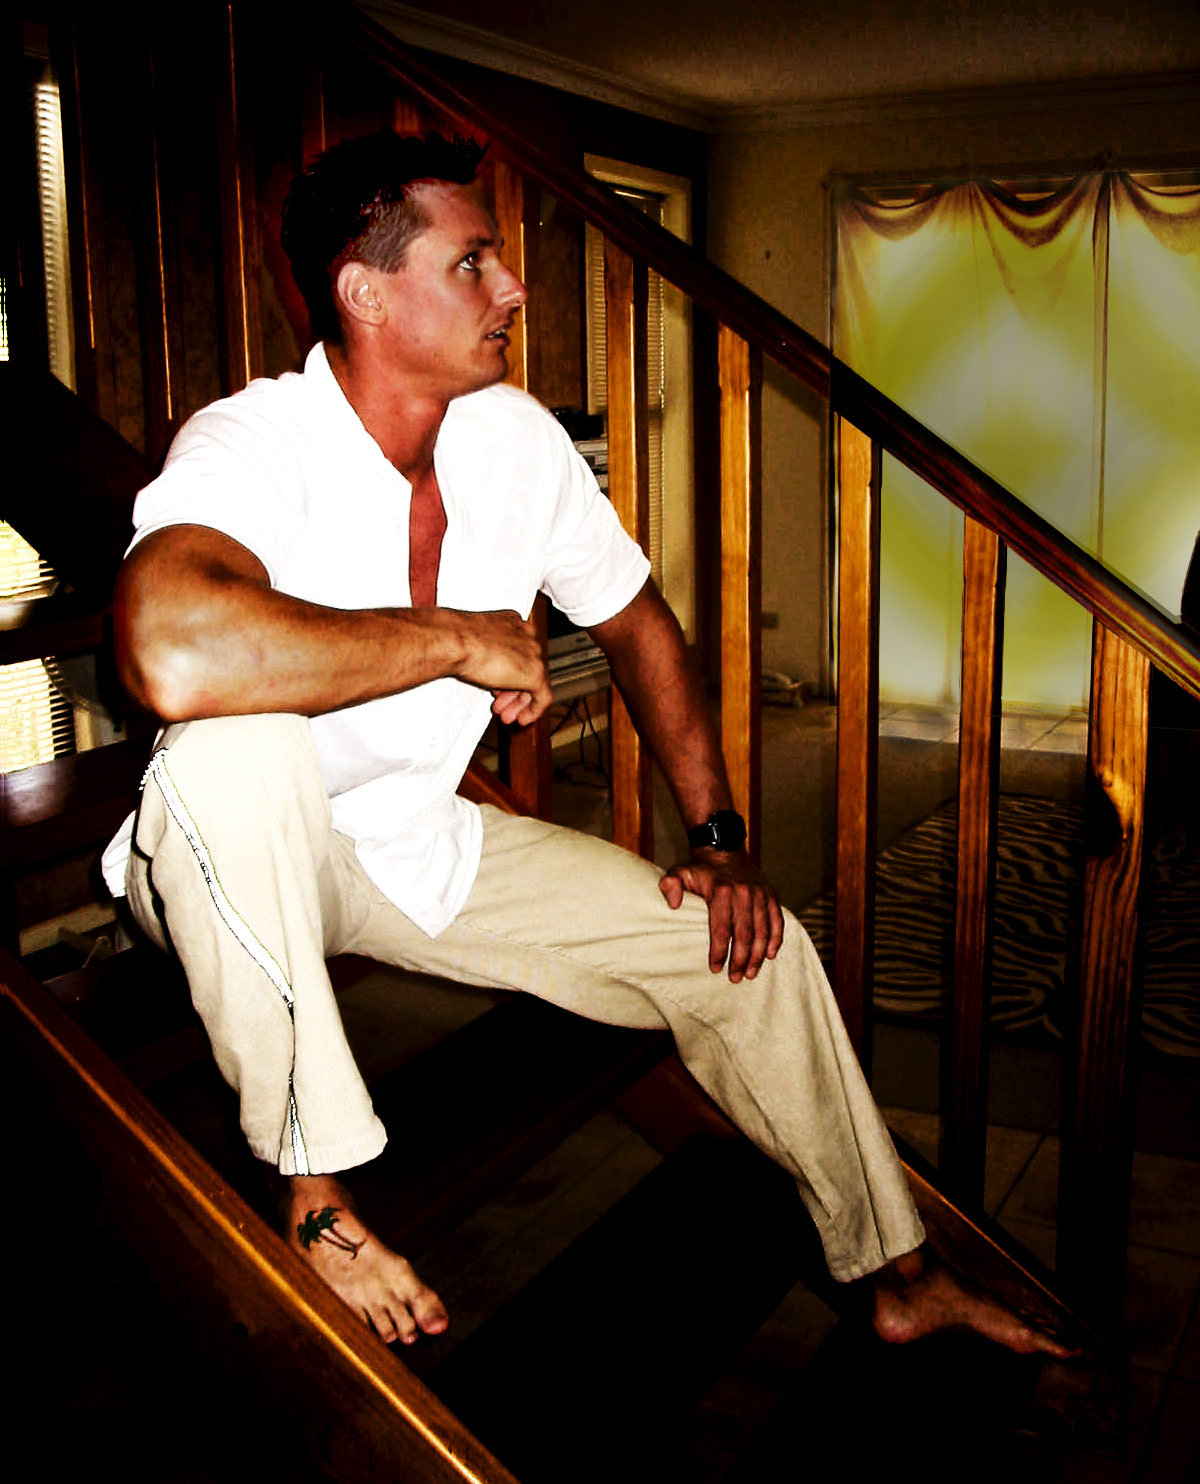 Naked Surfer